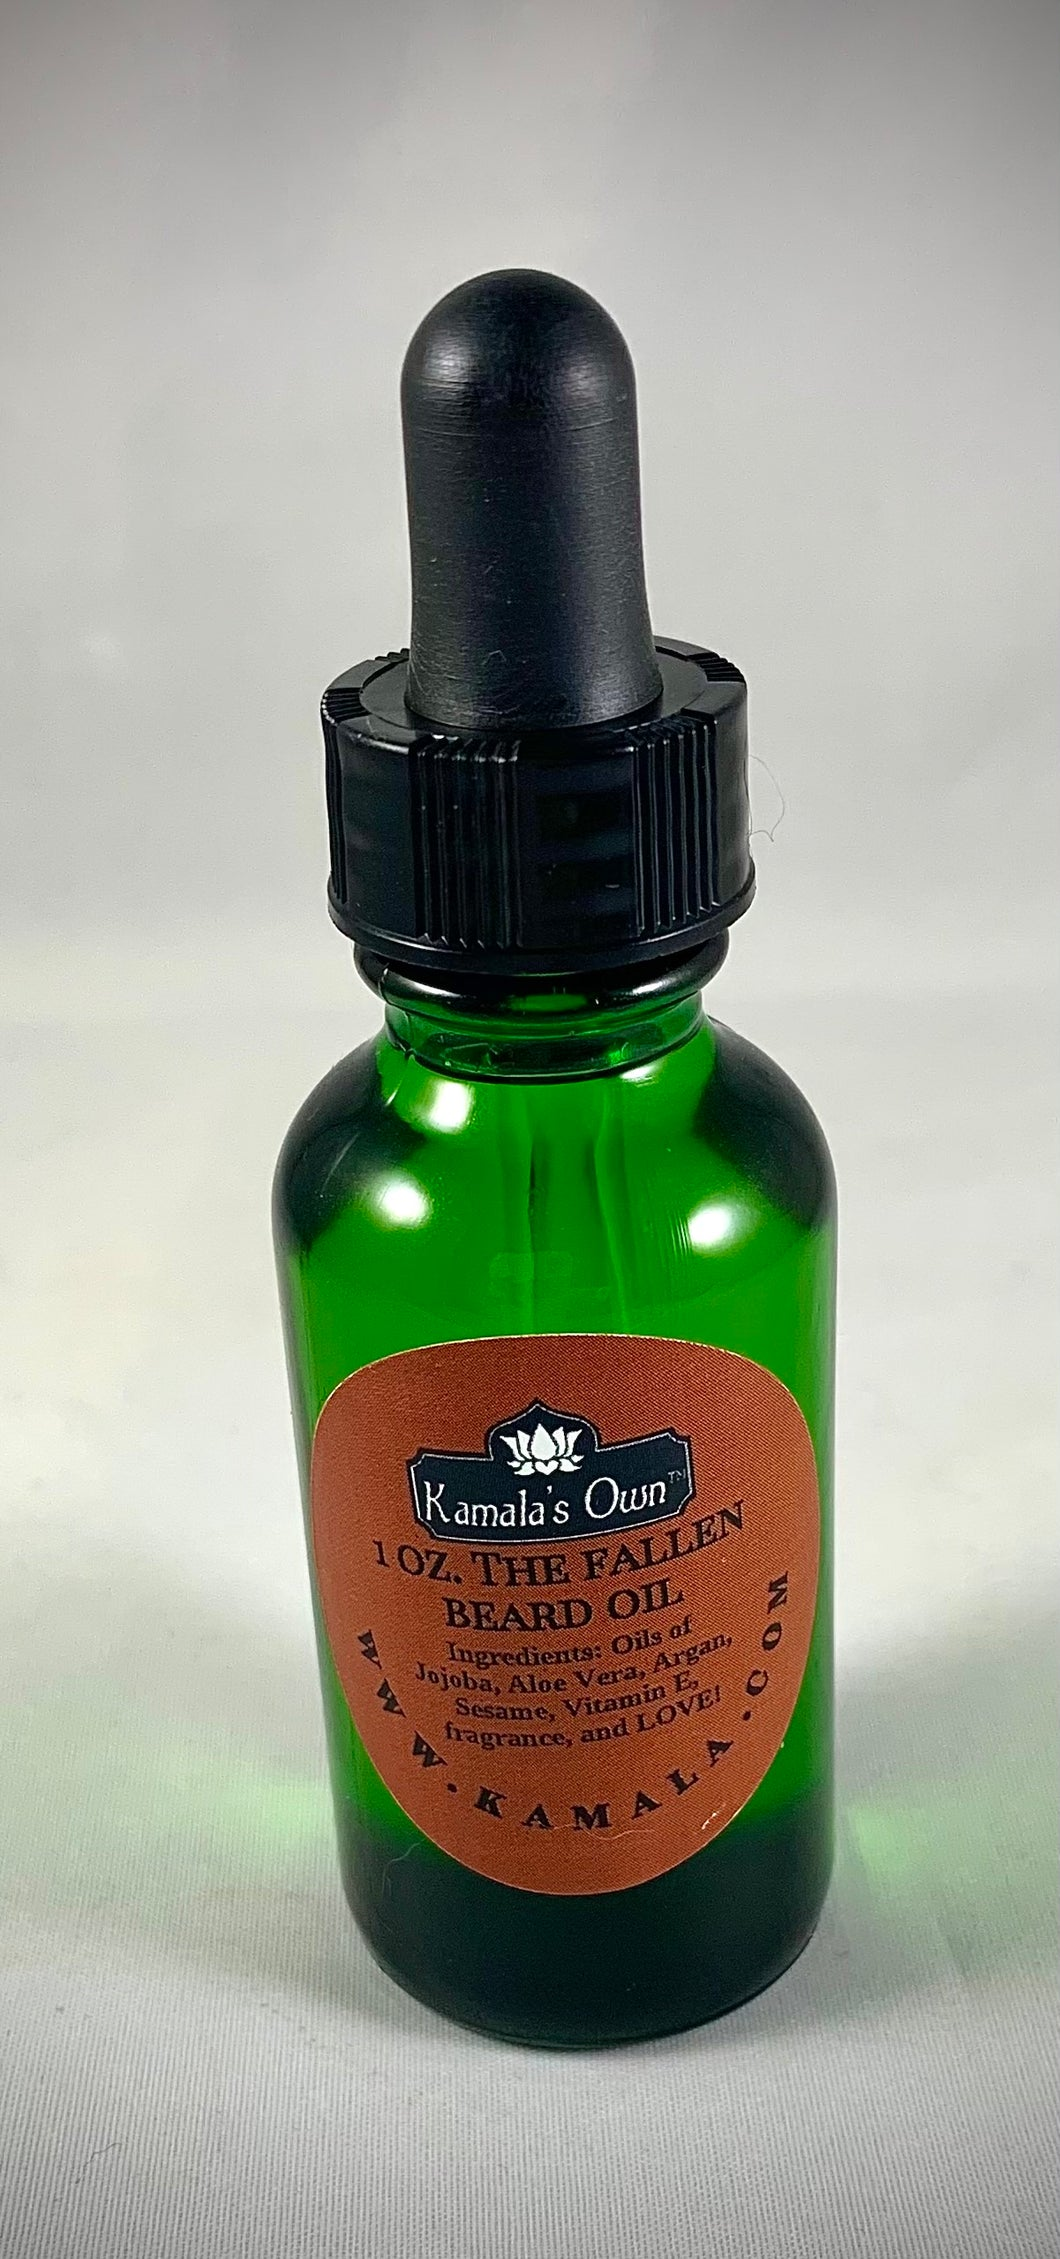 Beard oil—The Fallen